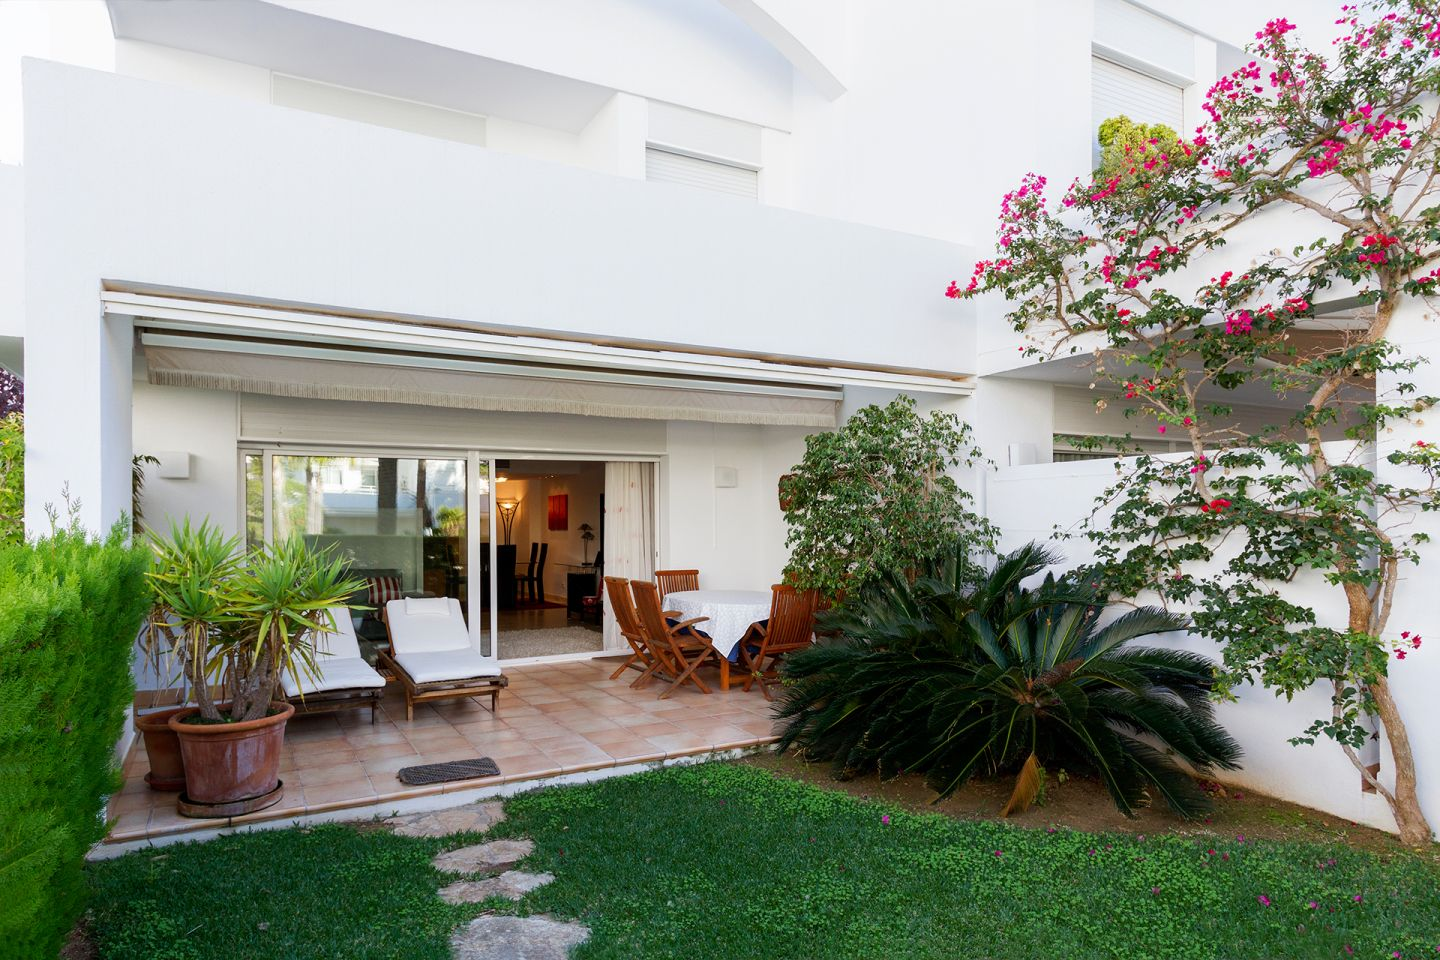 4 Bed Semidetached House for sale in PUERTO POLLENSA 1